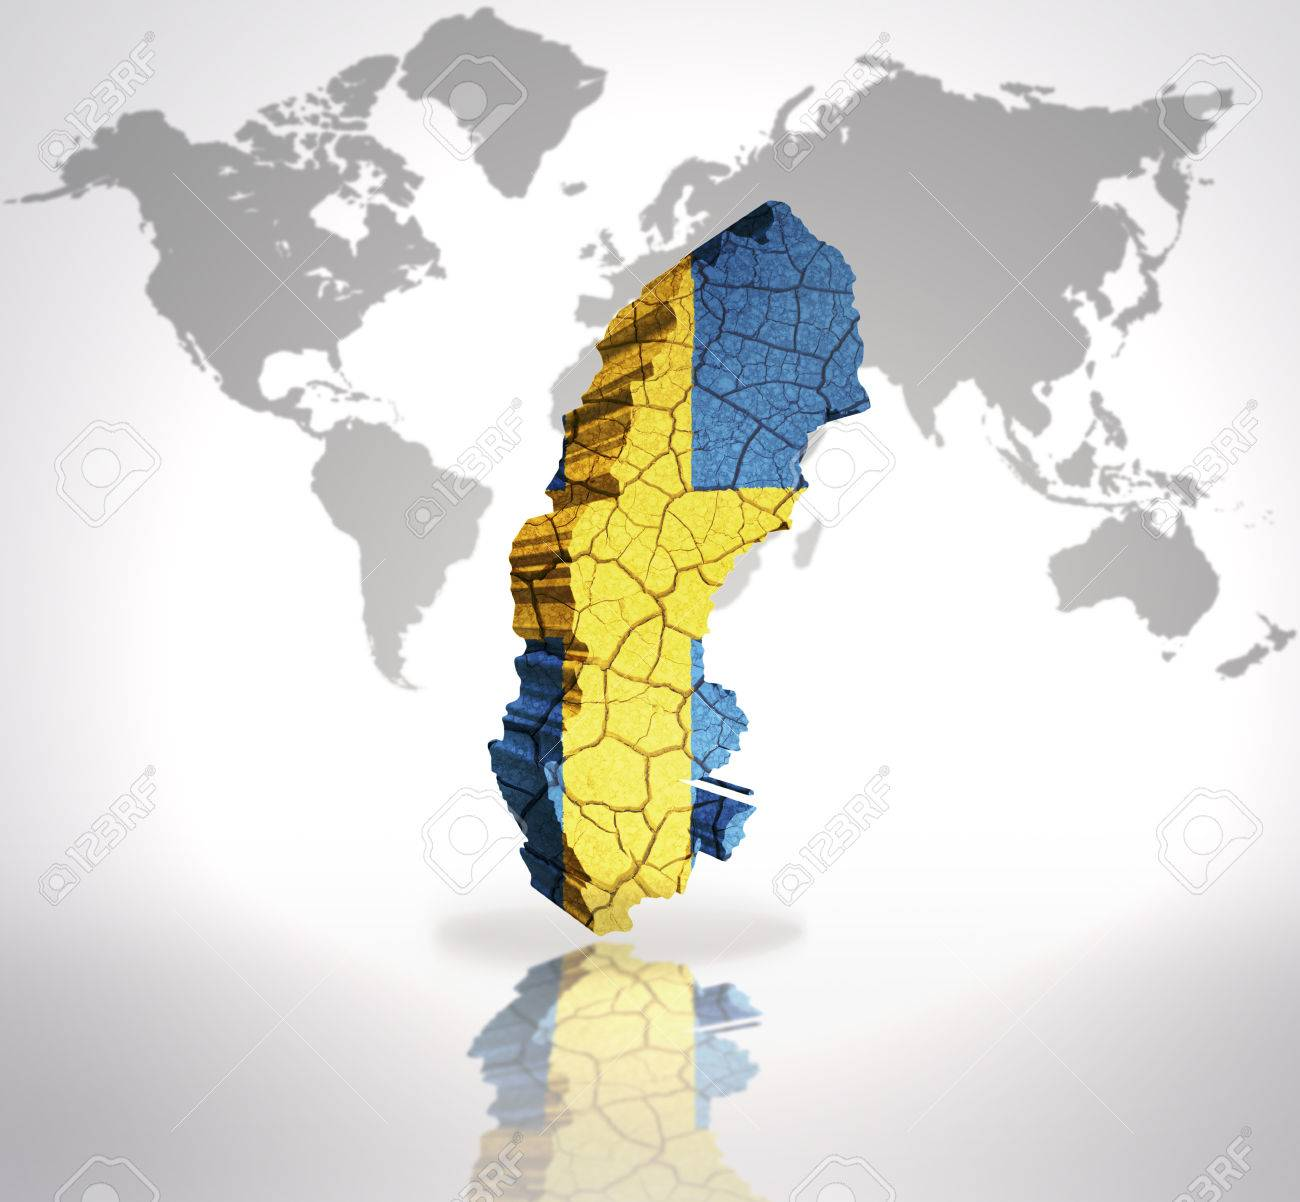 Map Of Sweden With Swedish Flag On A World Map Background Stock - Sweden map flag